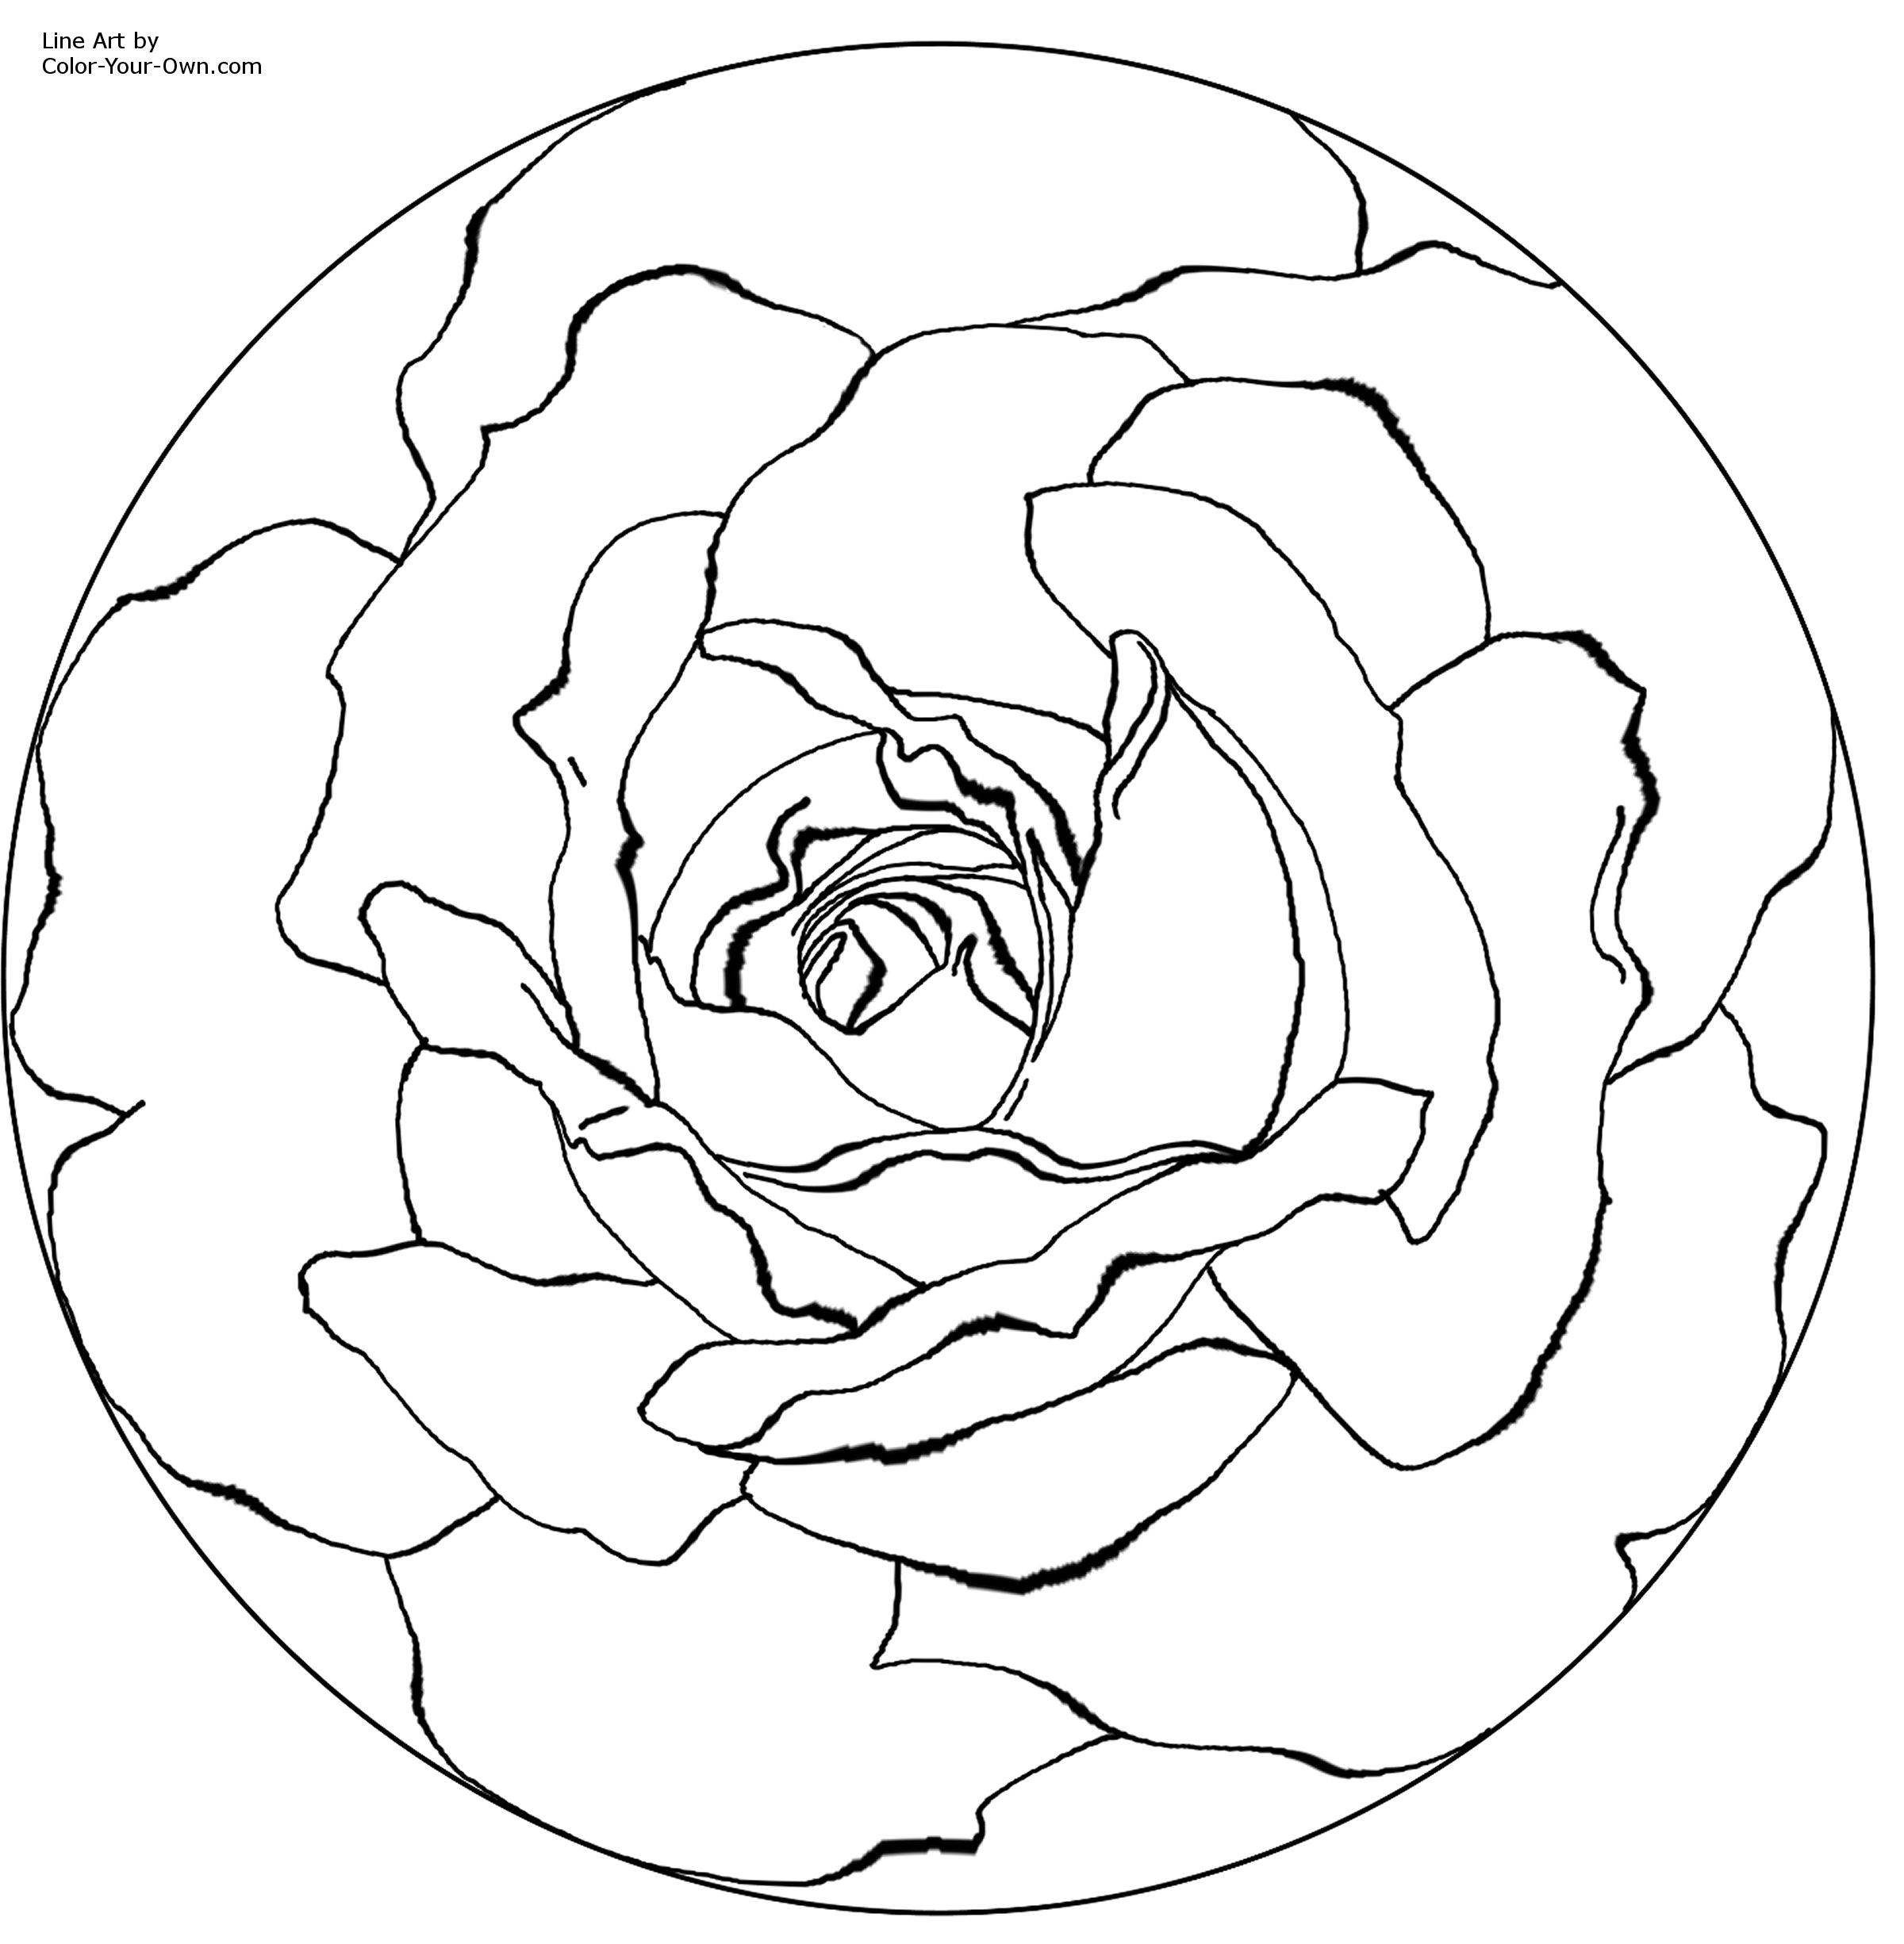 Mandala on Pinterest Mandala Coloring Pages Mandala